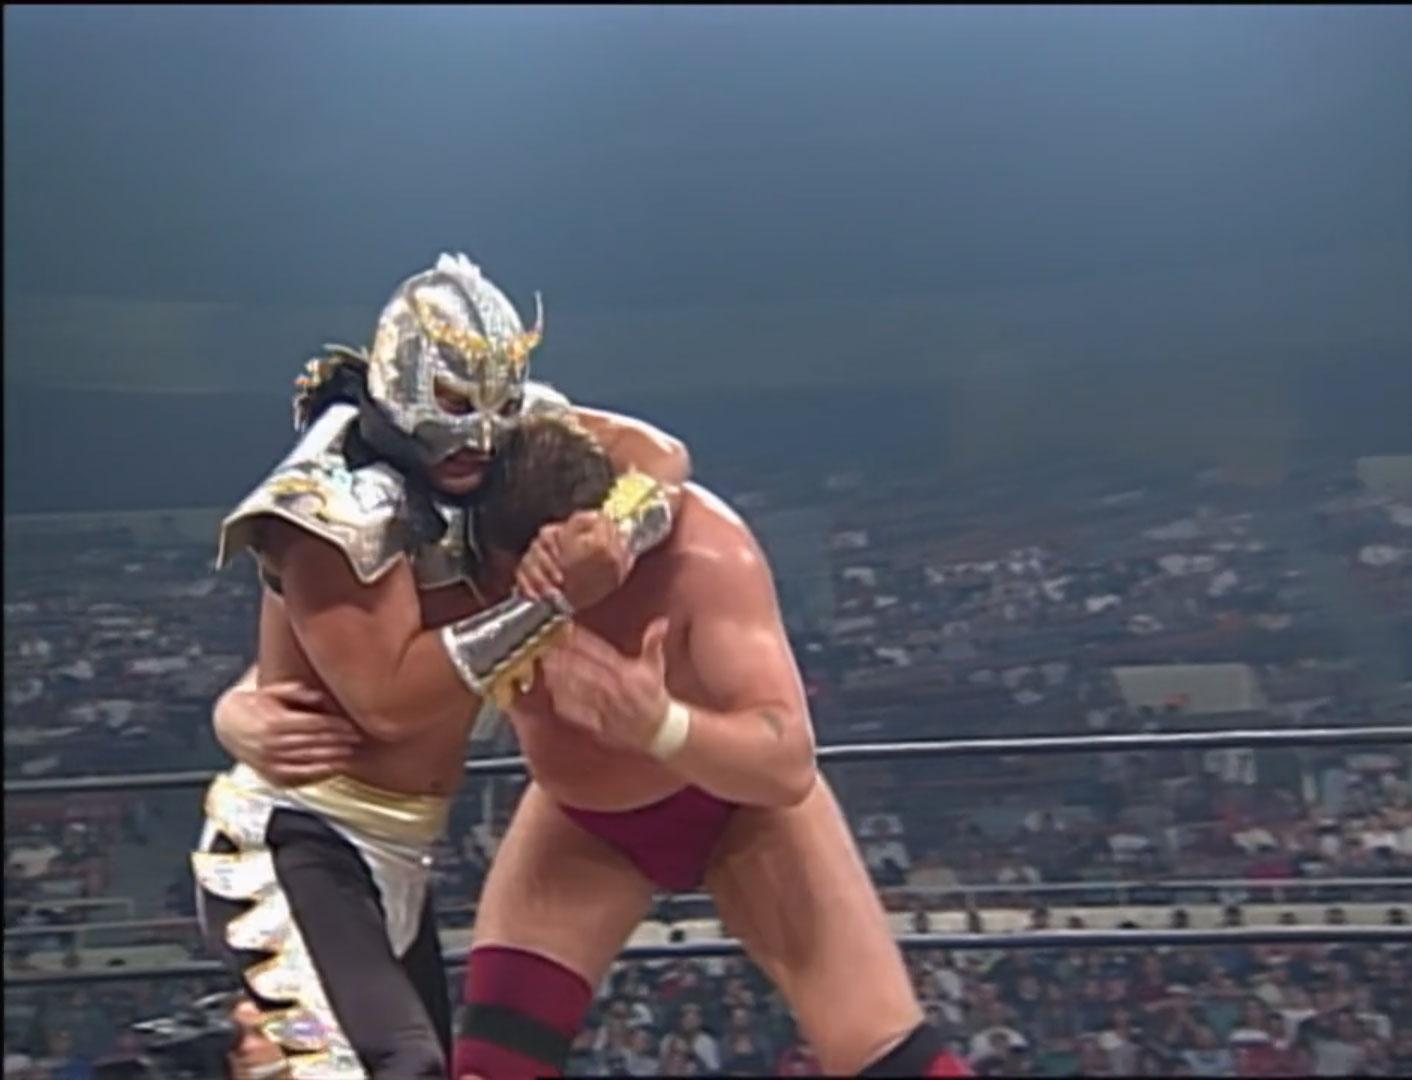 Lord Steven Regal vs. Ultimo Dragon  WCW World Television Title WCW Slamboree '97, May 18th 1997